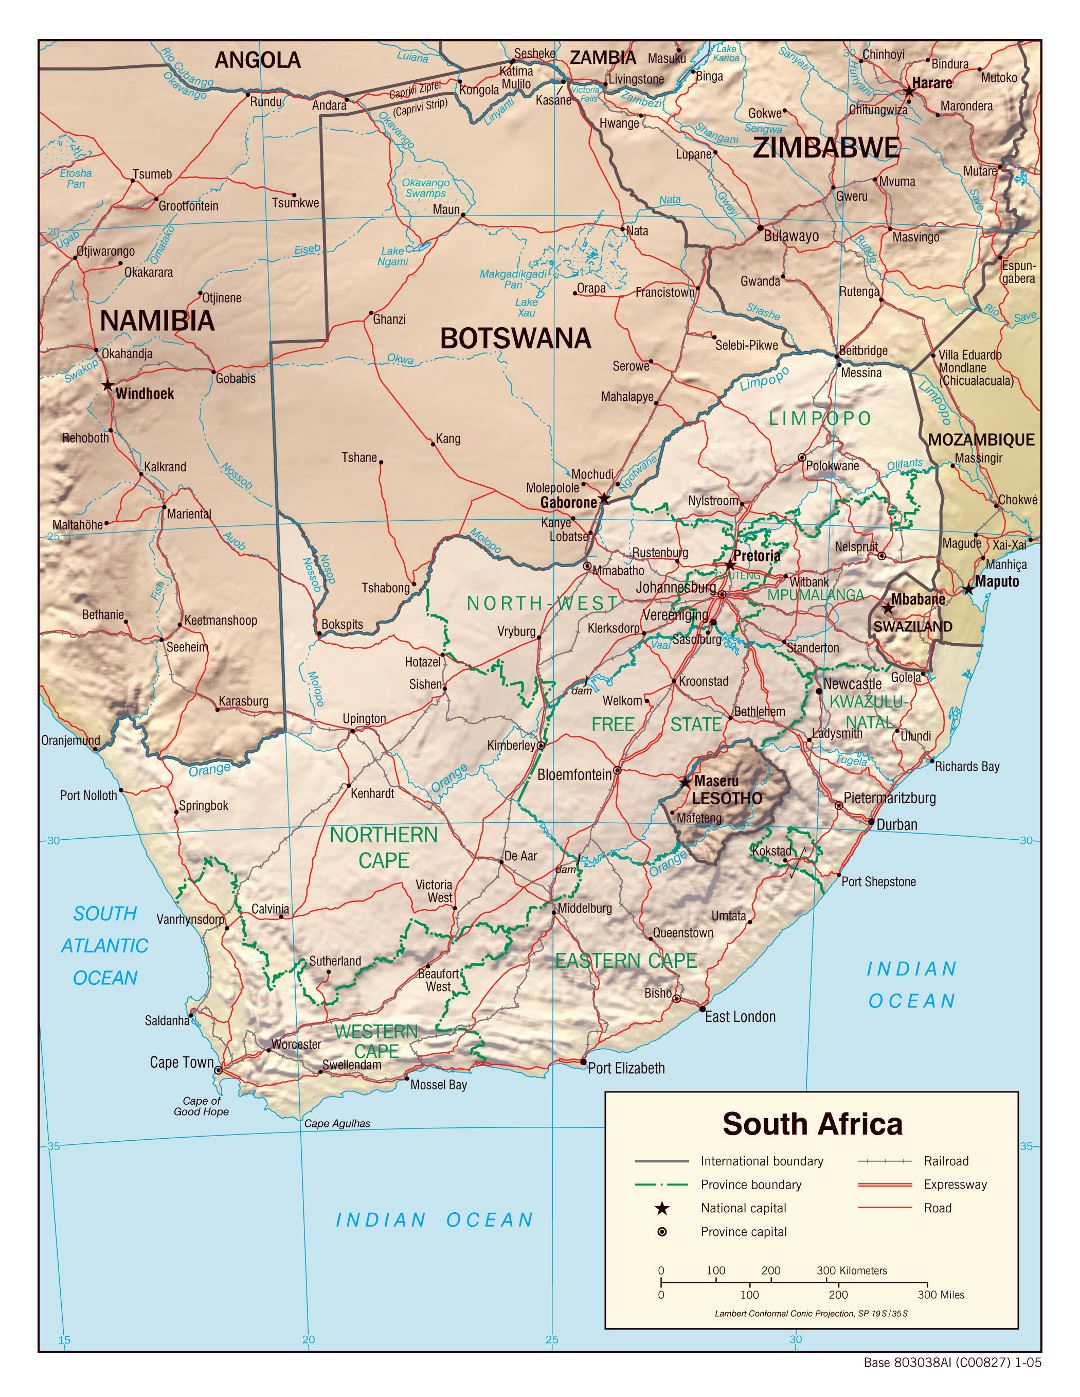 Large political and administrative map of South Africa with relief, roads, railroads and major cities - 2005